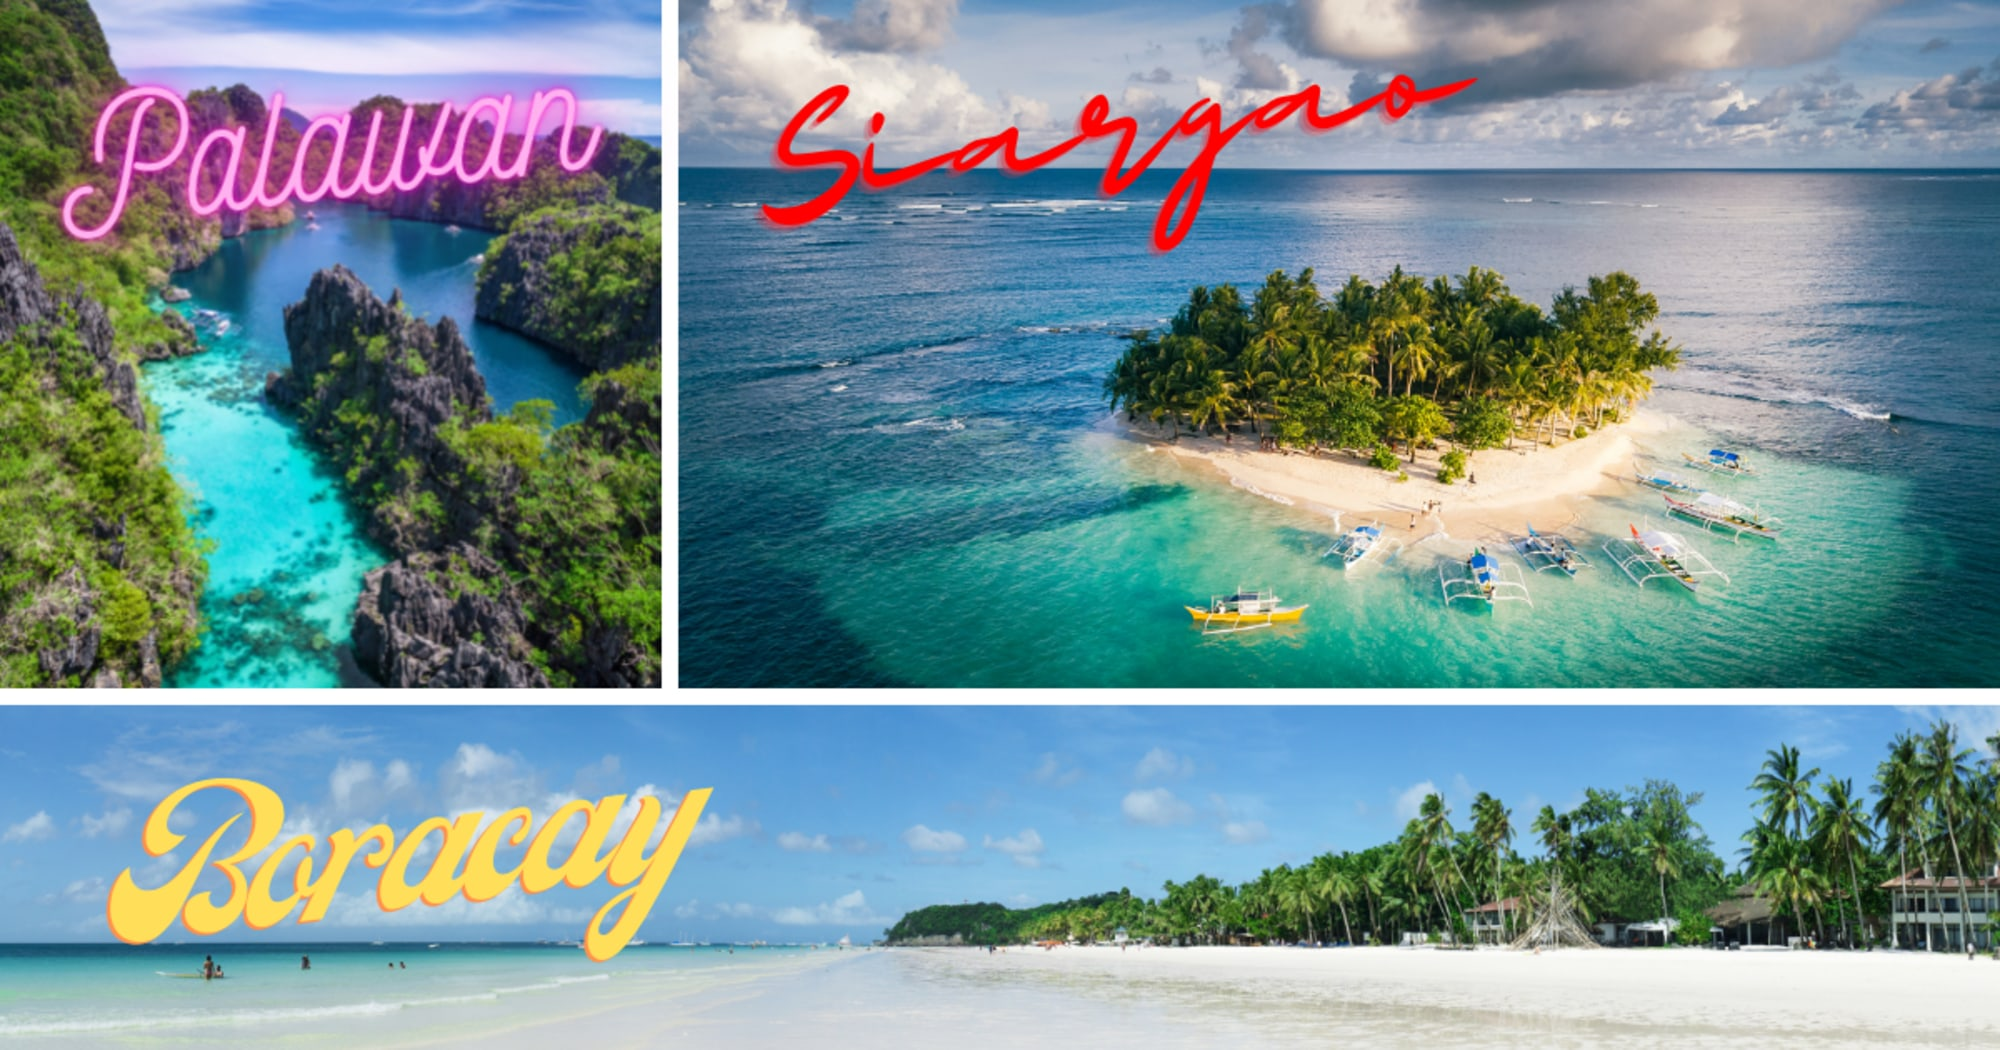 Boracay Island, Siargao and Palawan topped the list of Condé Nast Traveler (CNT) magazine for the Asia category